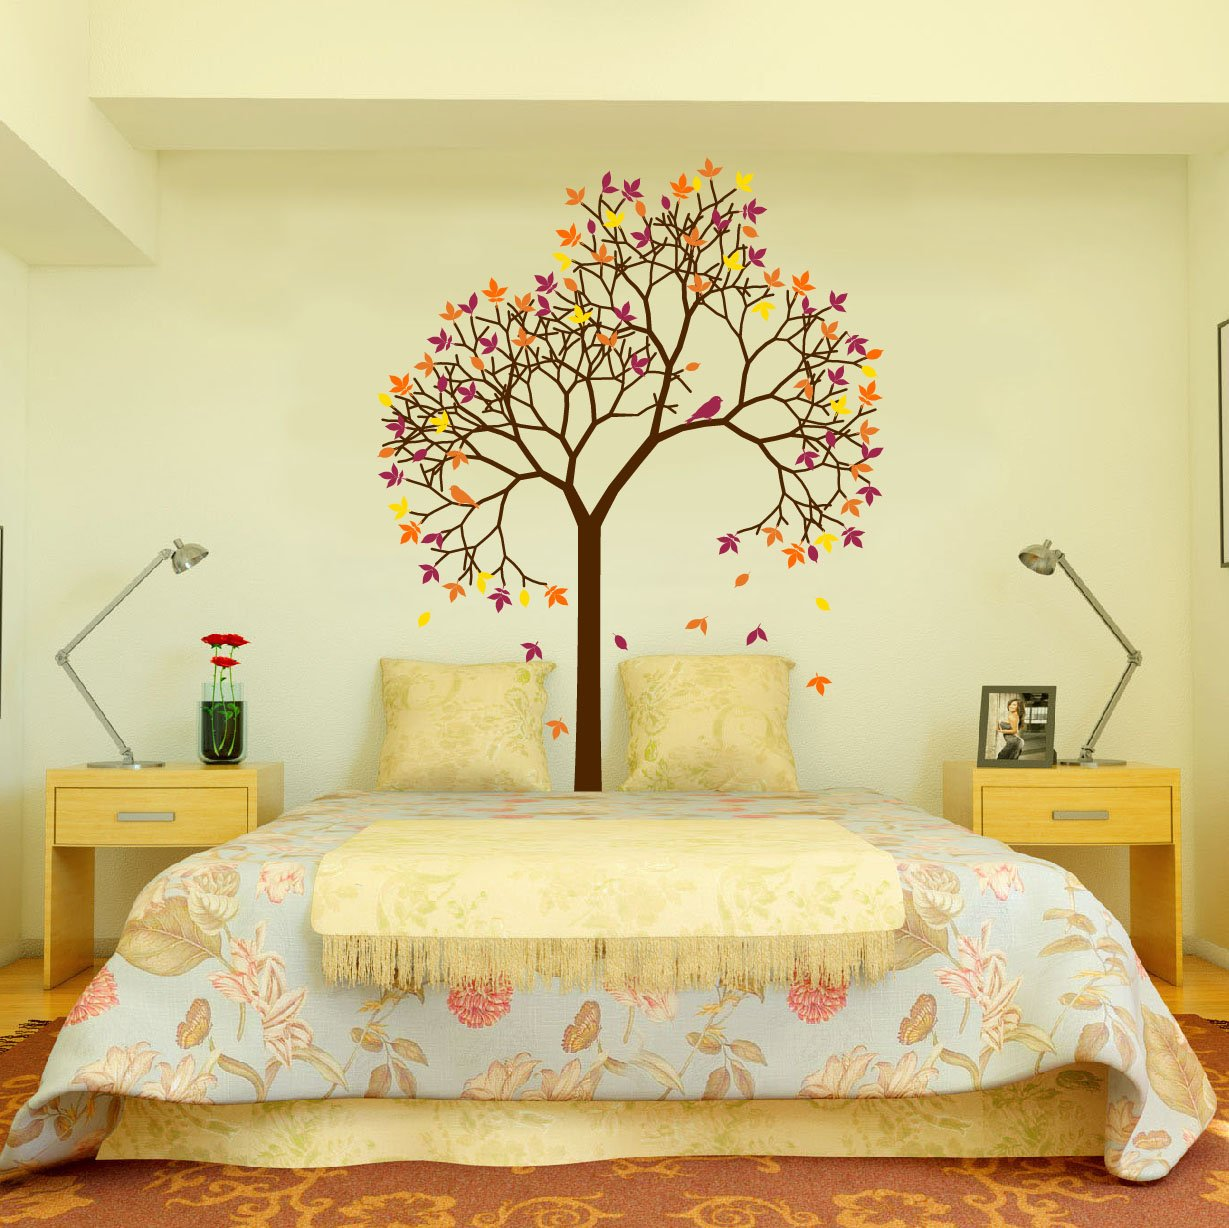 Amazon.com: Aspen Tree Wall Decal with Bird and Leaves Vinyl Sticker ...